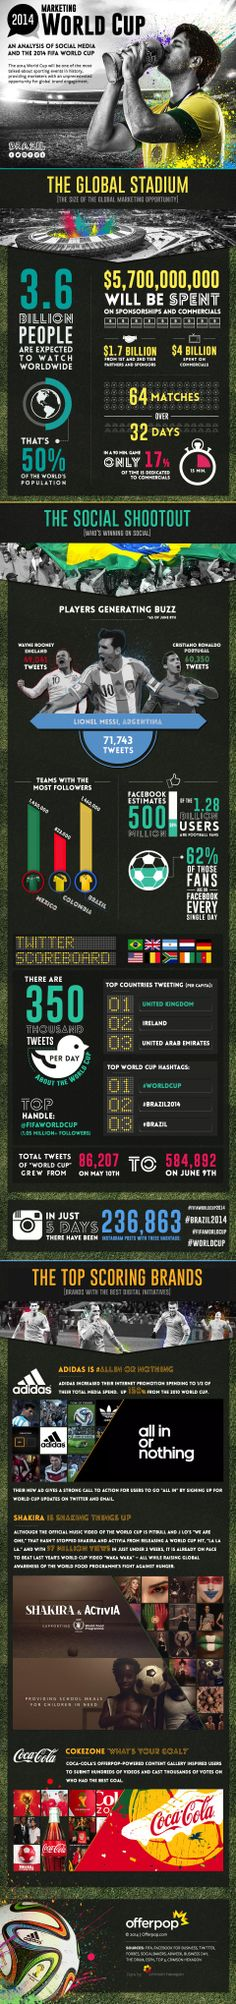 2014 Marketing World Cup - An analysis of Social Media and the 2014 FIFA World Cup infographic Sports Marketing, Marketing Digital, Online Marketing, Social Media Marketing, Content Marketing, Business Marketing, World Cup 2014, Fifa World Cup, Communication